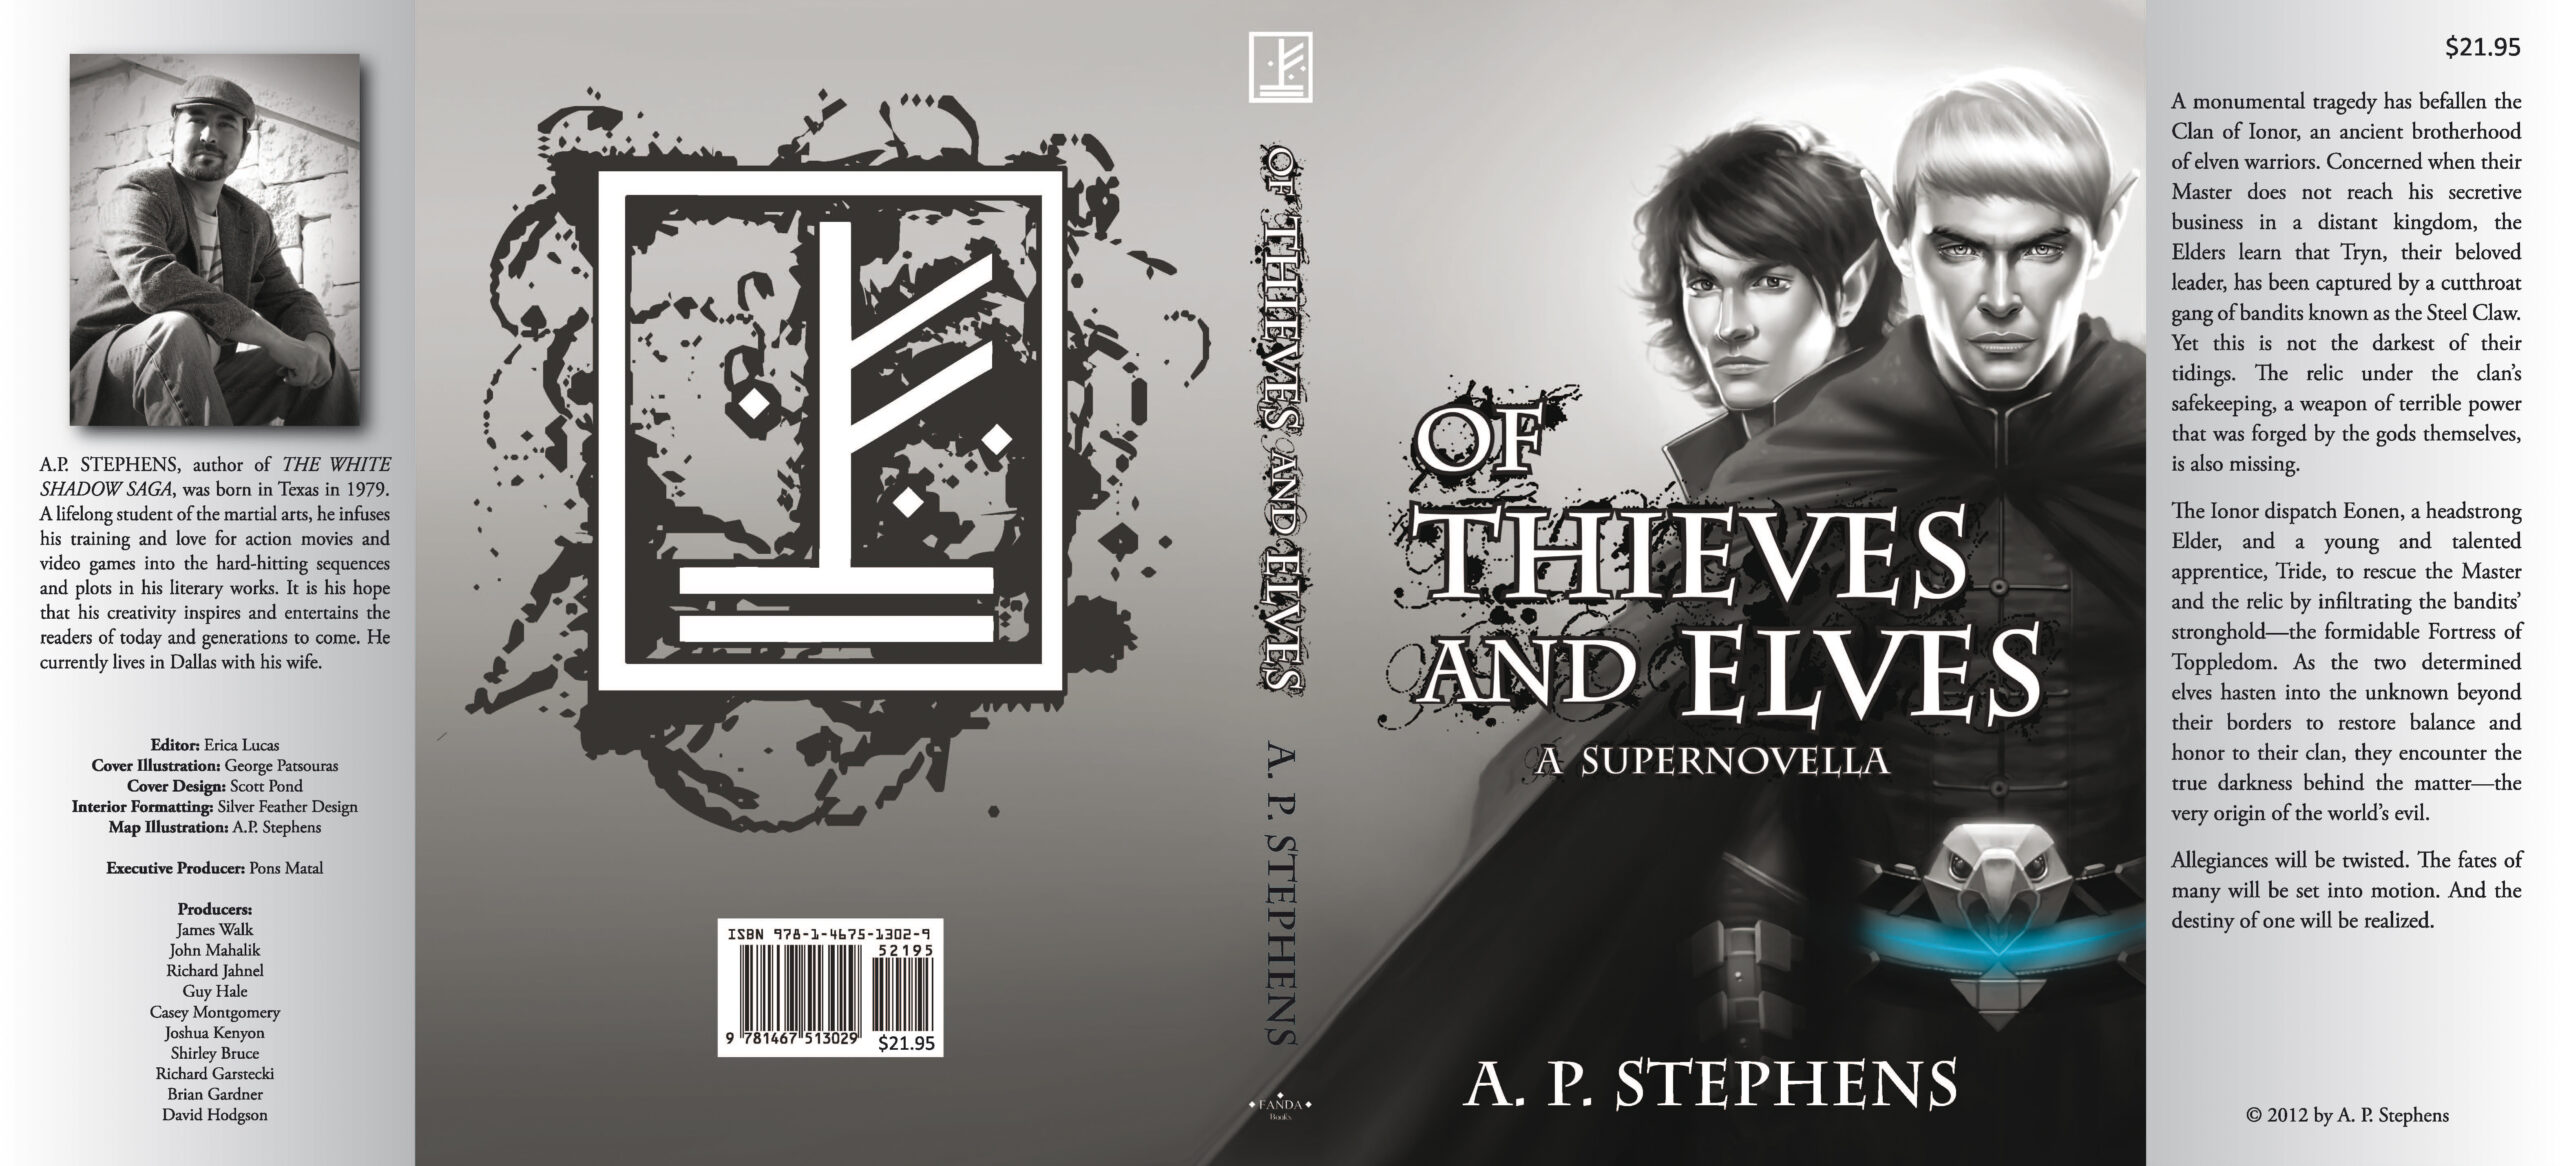 Of-Thieves-and-Elves-01